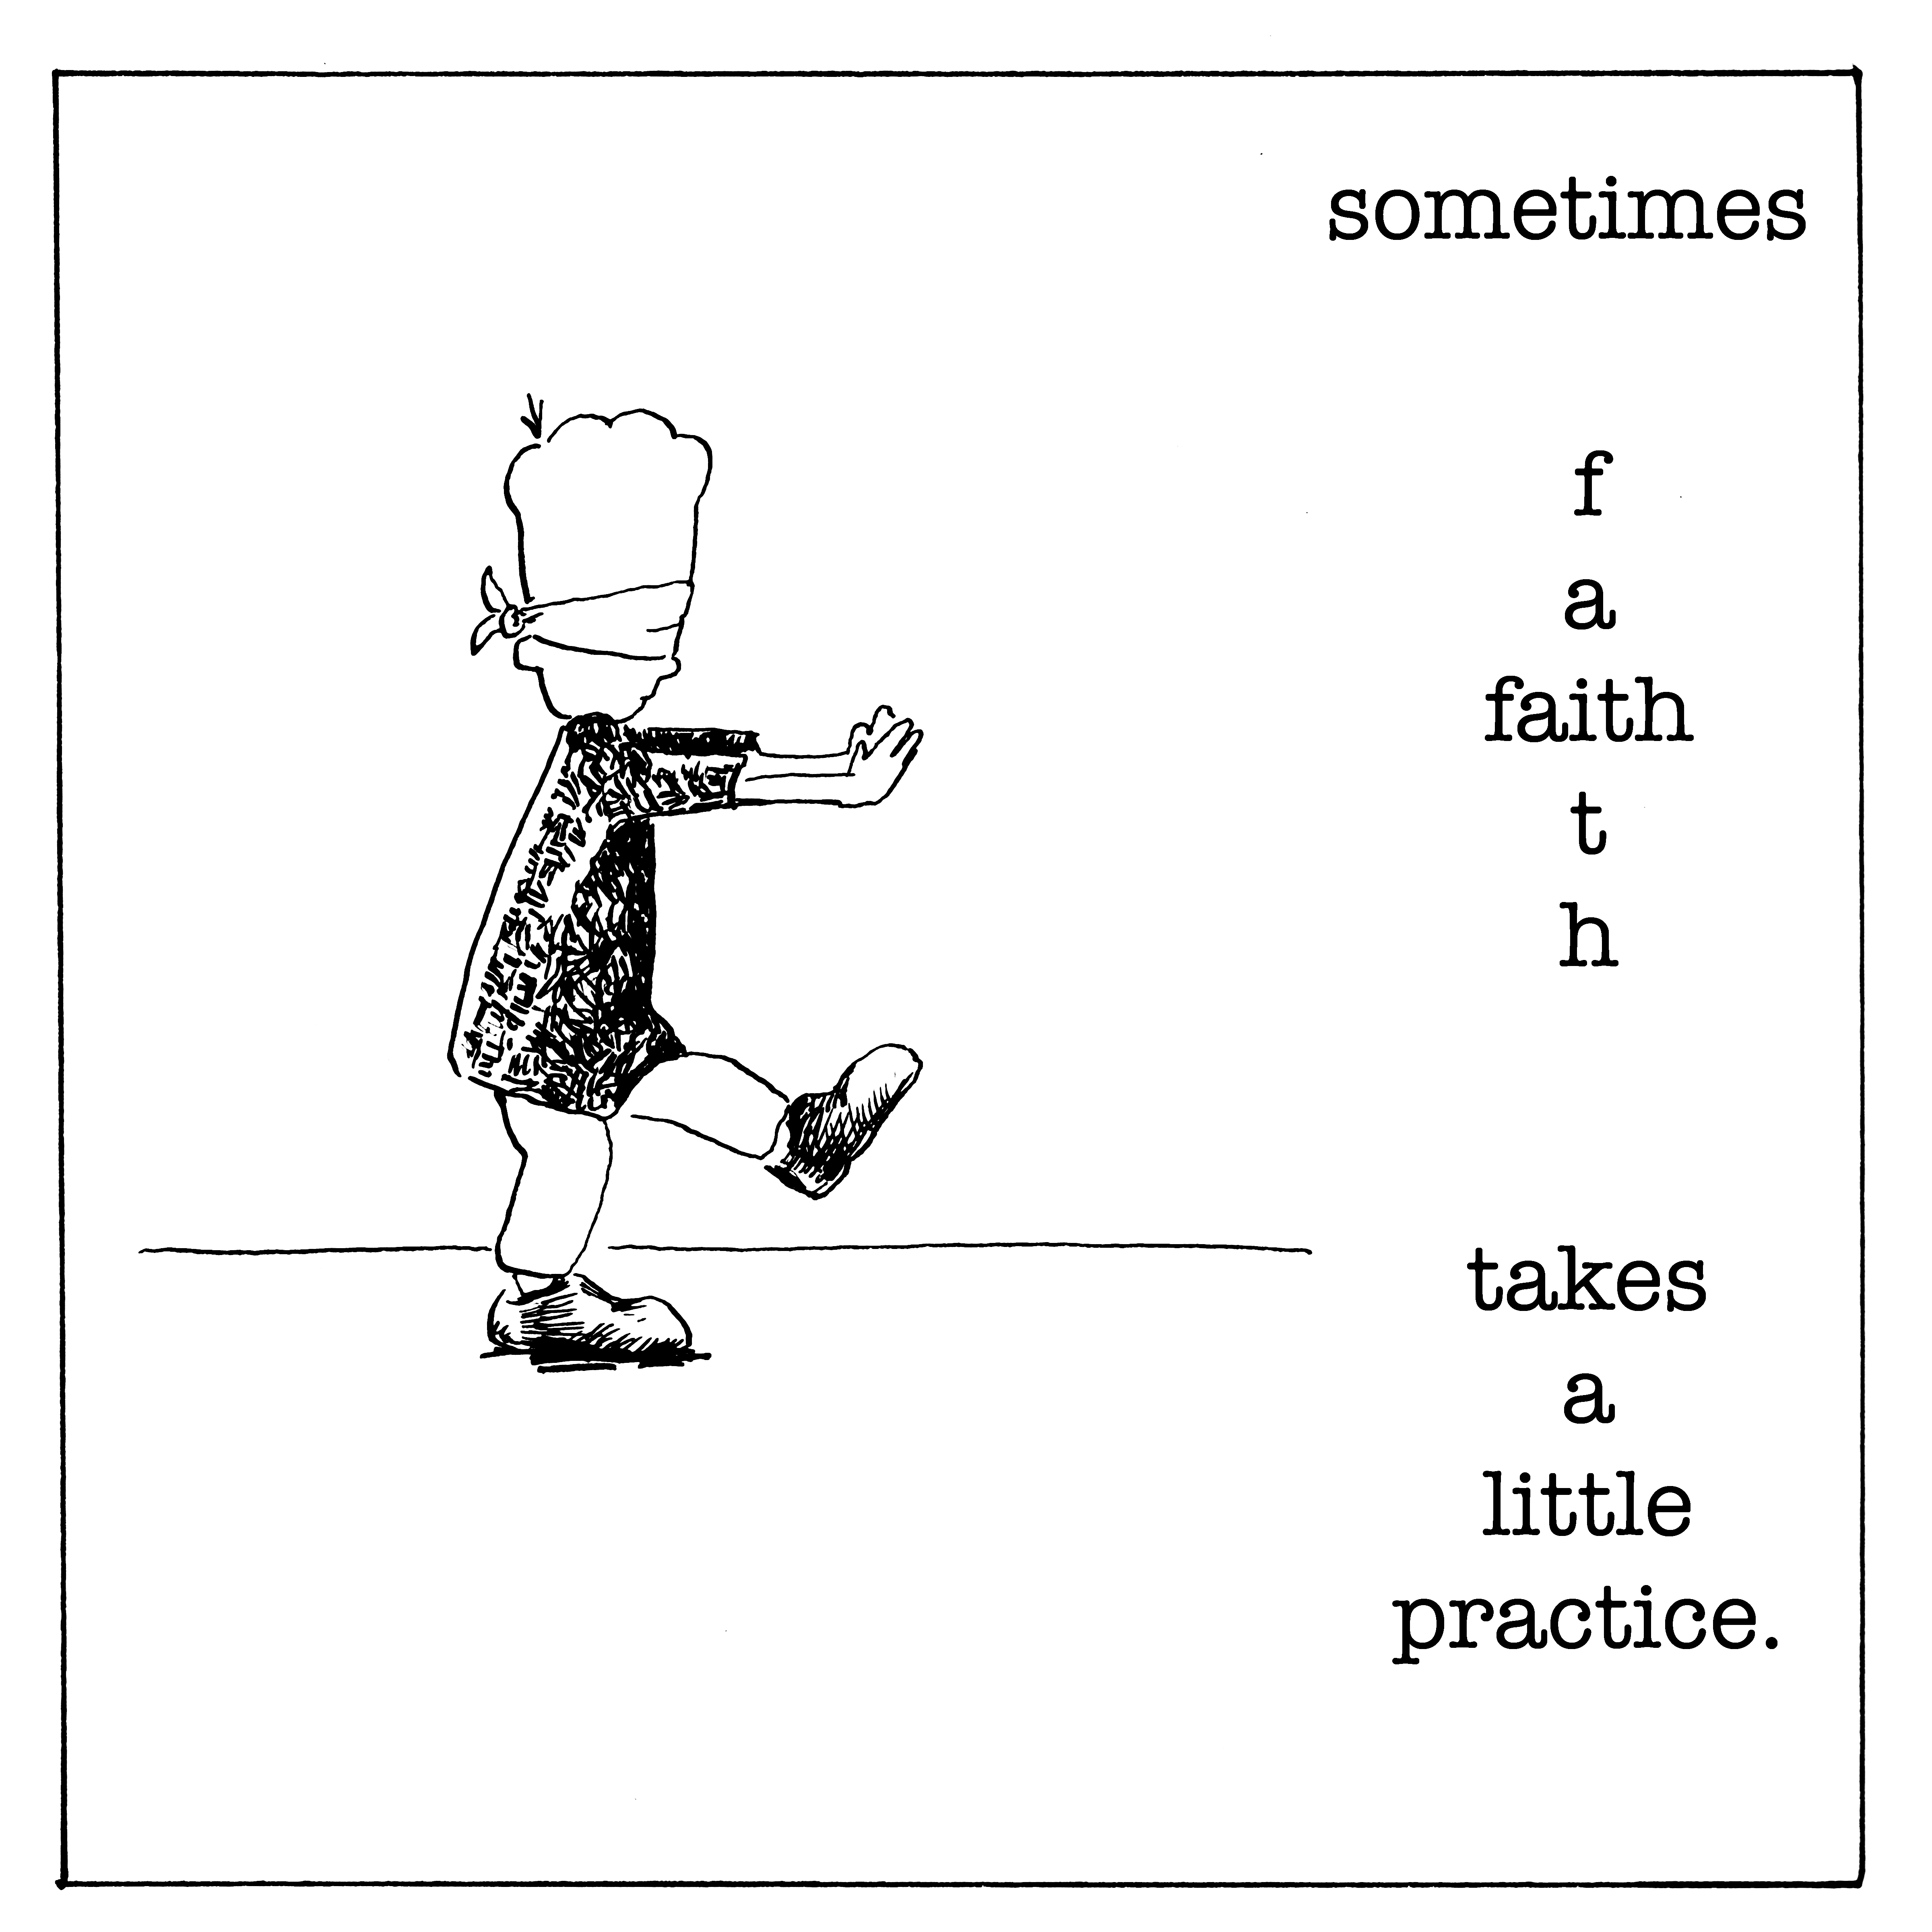 sometimesfaith WITH EYES jpeg copy 2